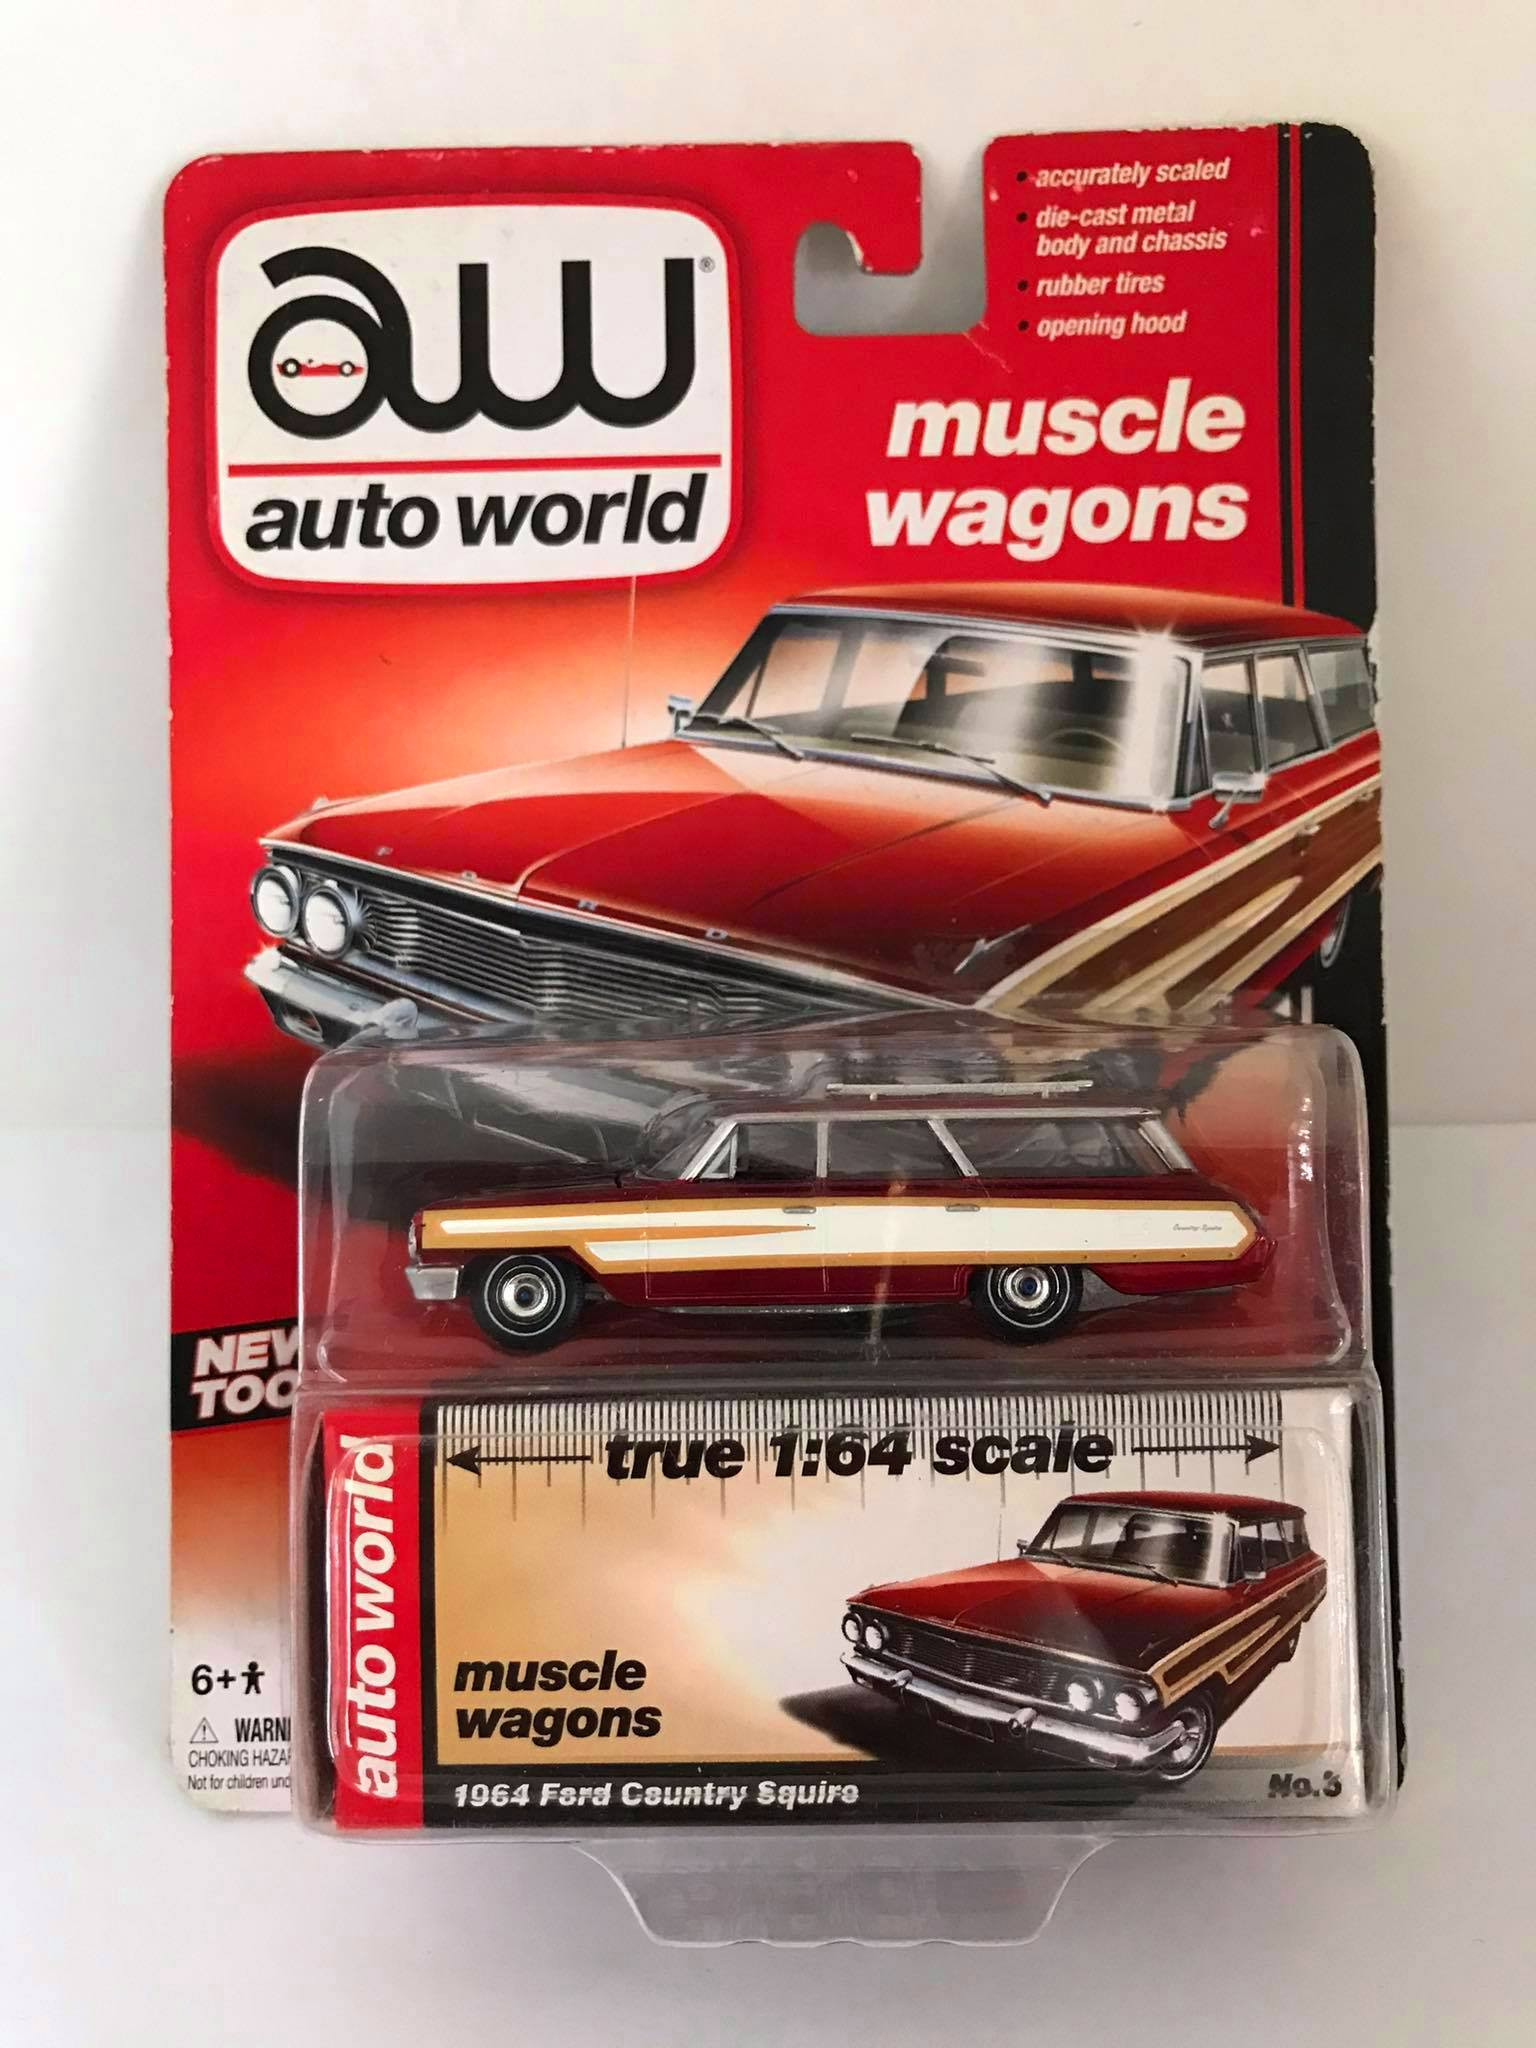 Auto World - 1964 Ford Country Squire - Chase ULTRA RED - Muscle Wagons